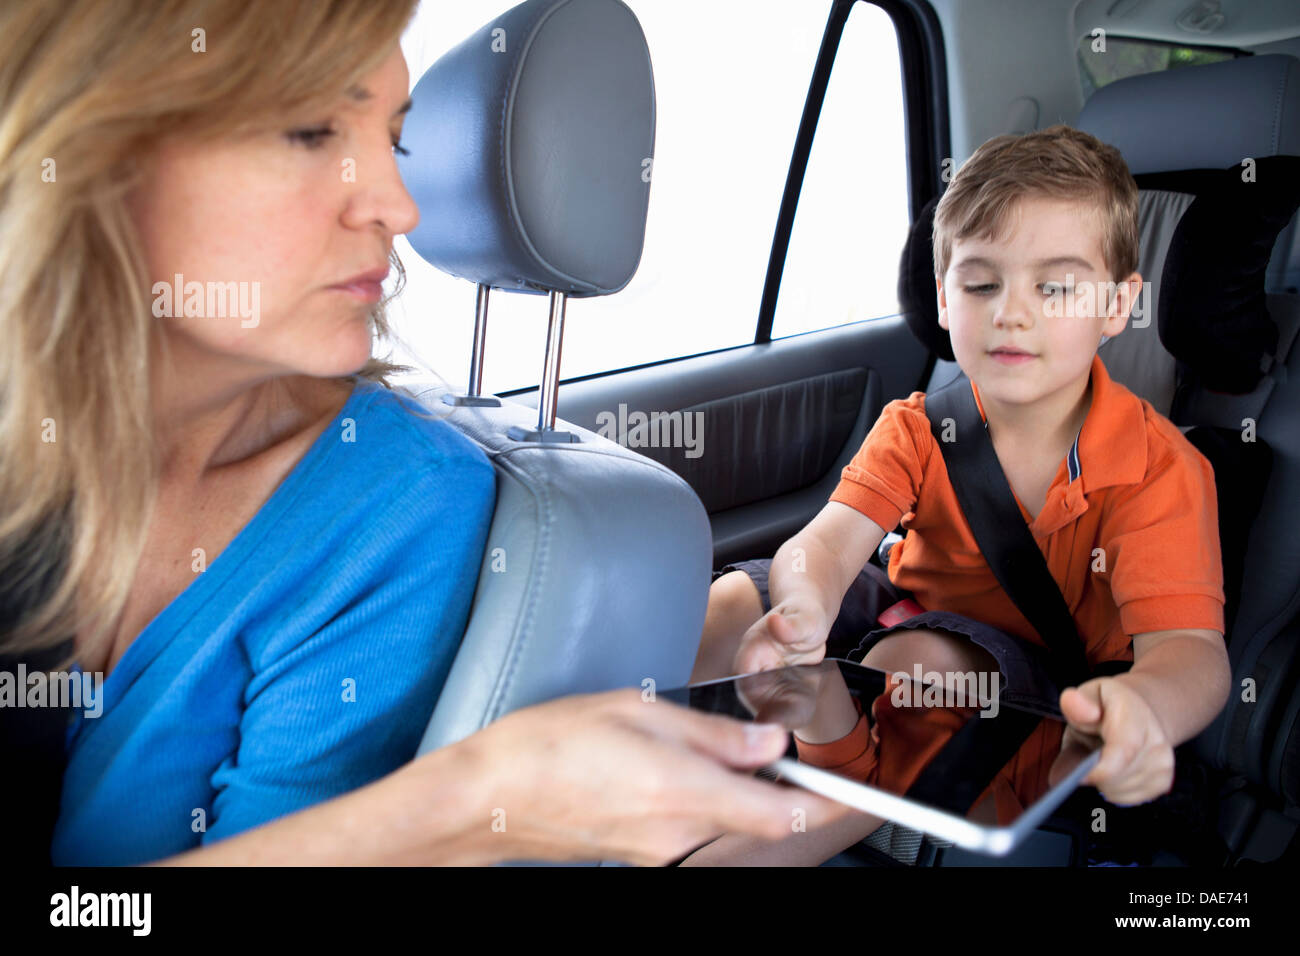 Mother passing digital tablet to son in back seat of car - Stock Image